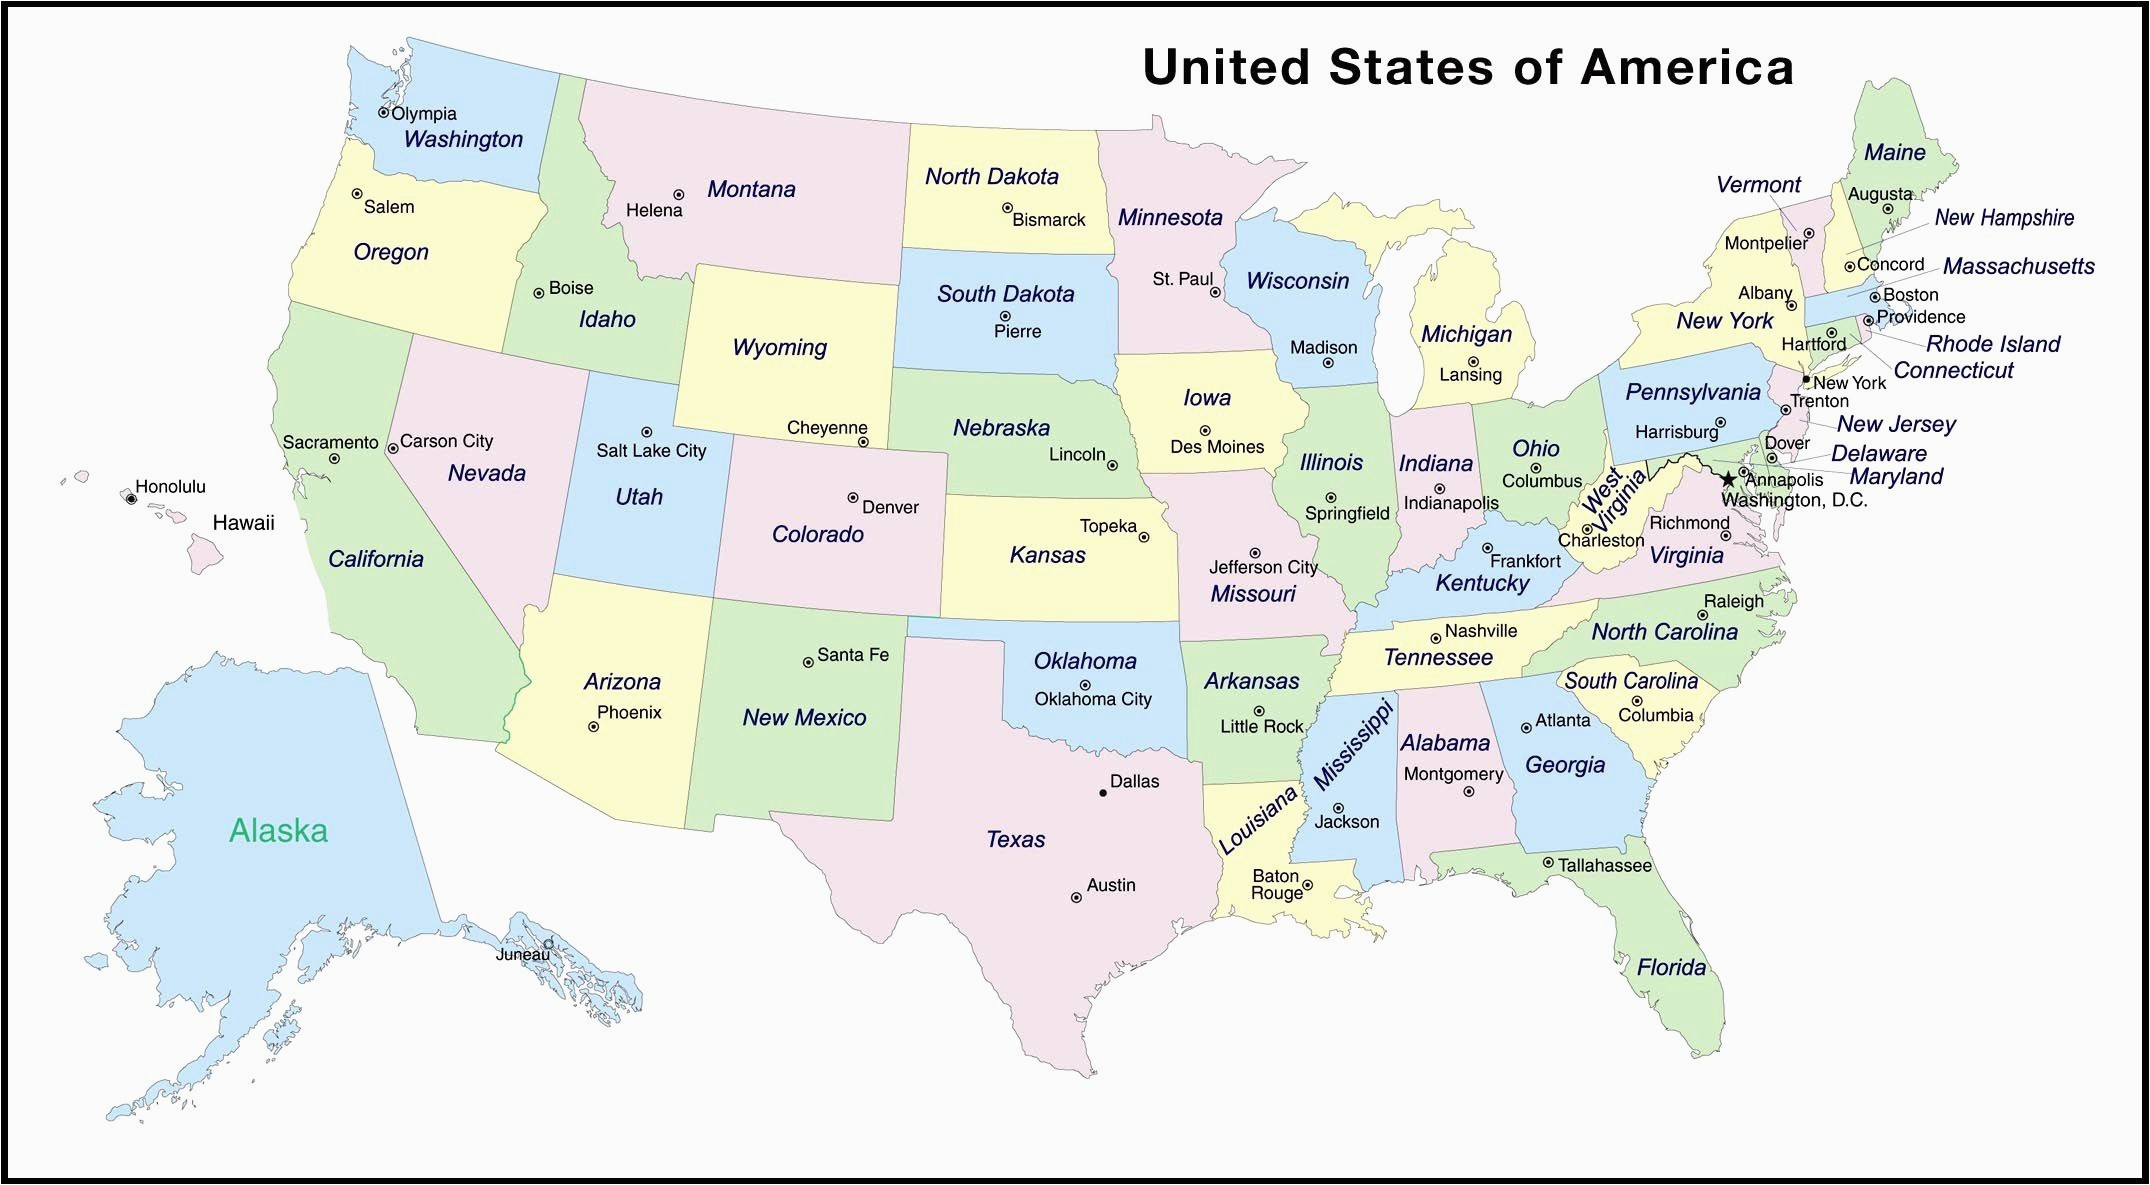 Map Of northeast Georgia United States Map Hollywood ... Map Northeast Usa on large usa map, west coast of the united states, southern united states, pacific northwest, ohio map, mount washington, canada map, central united states, mid-atlantic states, south usa map, mountain states, northwestern united states, southeast usa map, west usa map, new york city usa map, great migration, pacific states, northern united states, new hampshire map, midwestern united states, rhode island map, south atlantic states, midwest usa map, southeastern united states, maine map, vermont map, maryland map, eastern usa map, east coast usa map, bible belt, east coast of the united states, kentucky map, western united states, southwestern united states, northwest usa map, new england, eastern united states, massachusetts map, southwest usa map, us atlas map,